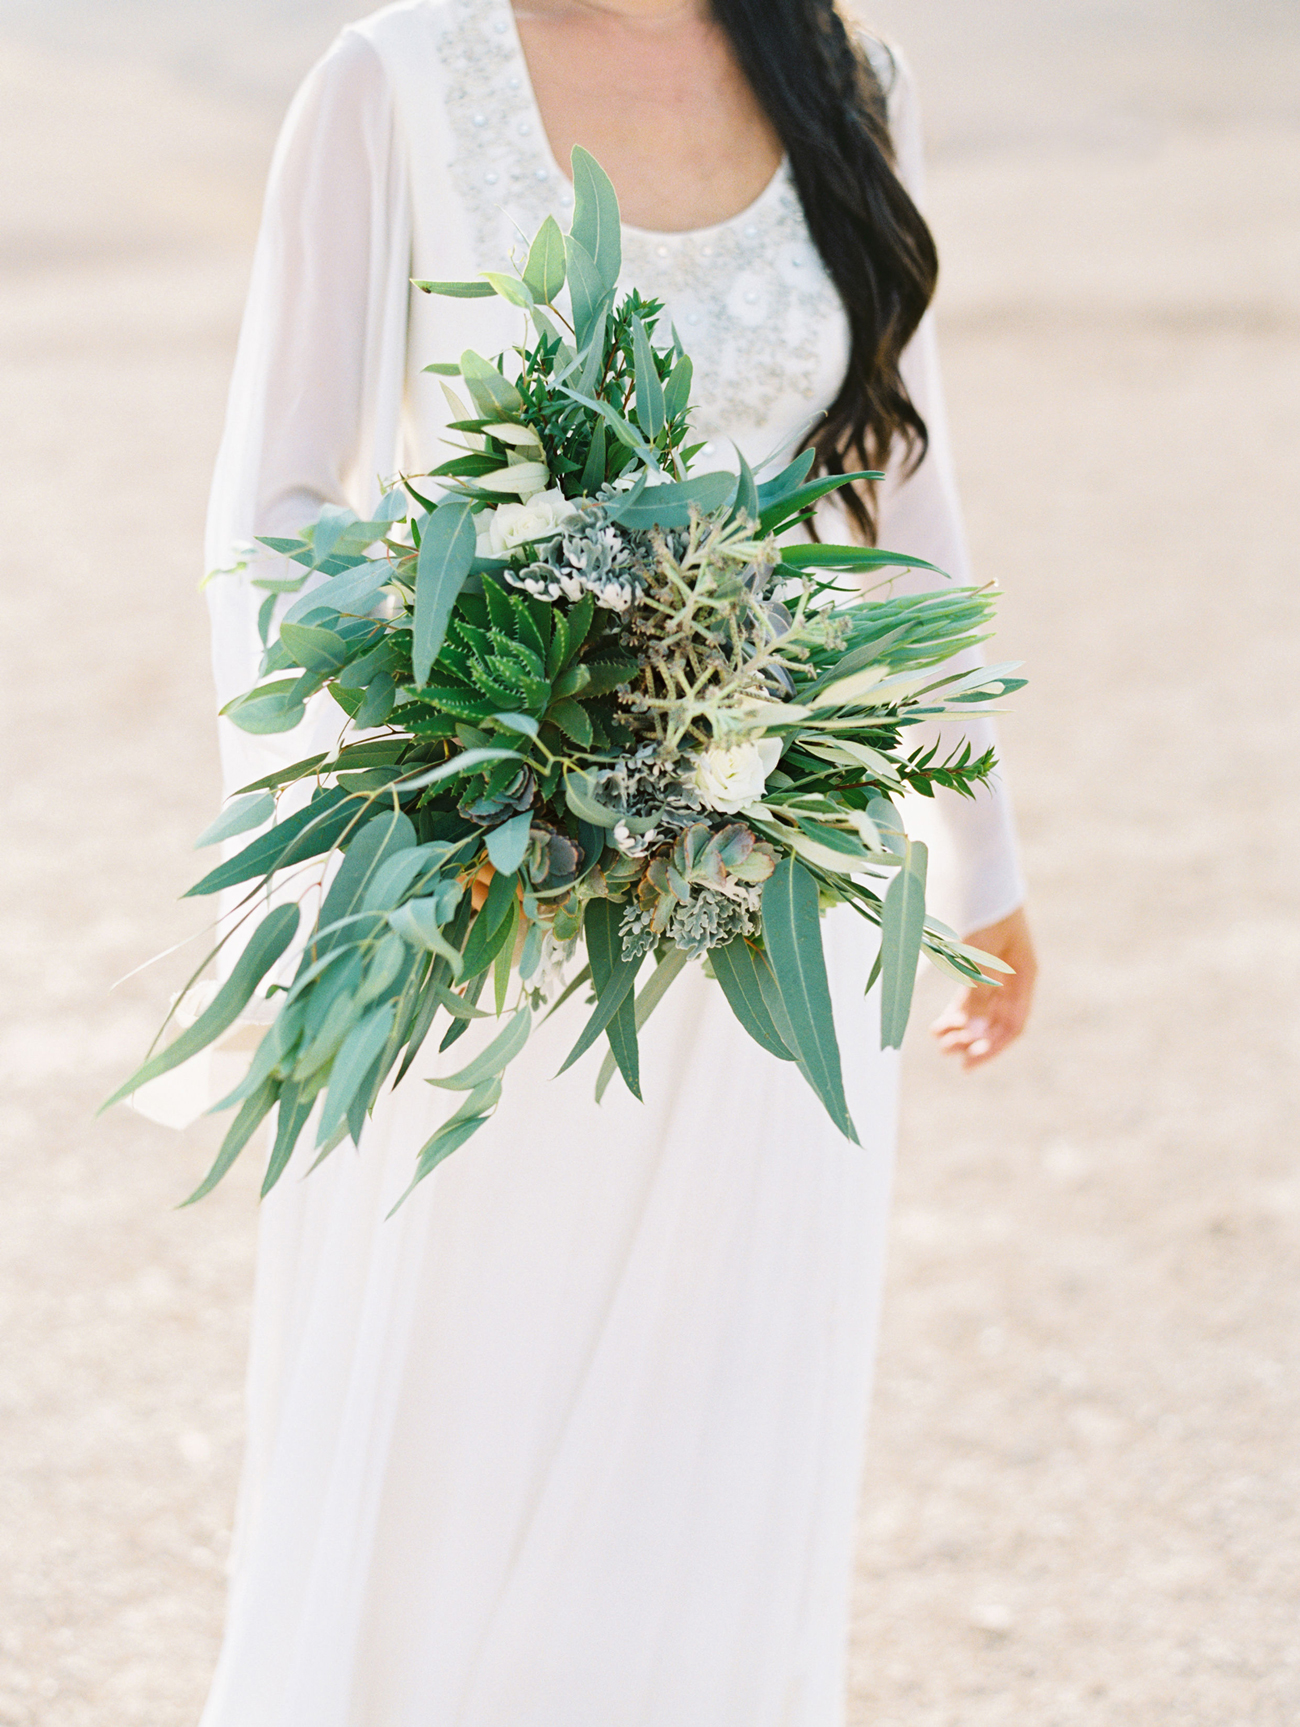 bride holding bouquet made of greenery